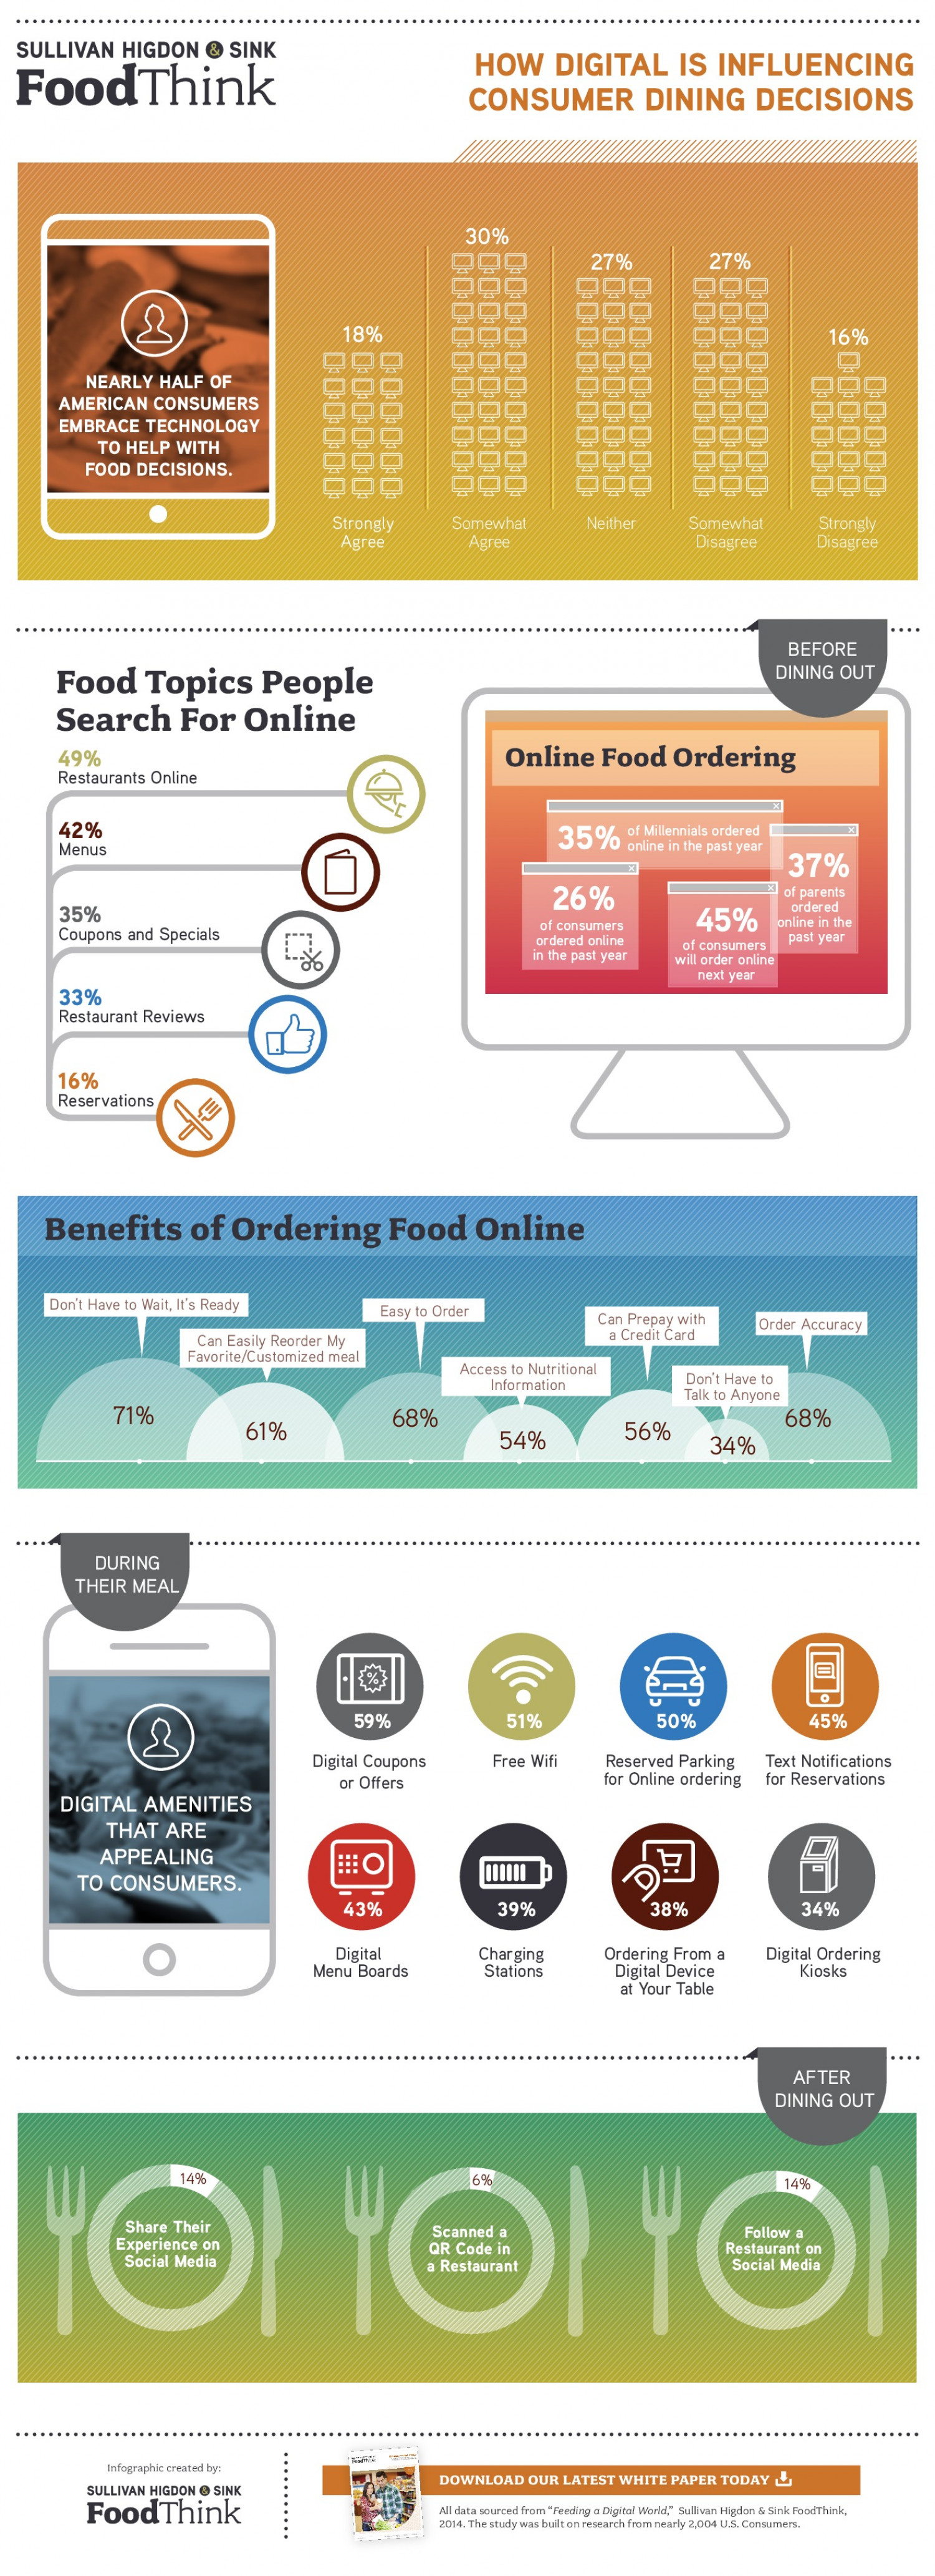 How Digital is Influencing Consumer Dining Decisions Infographic